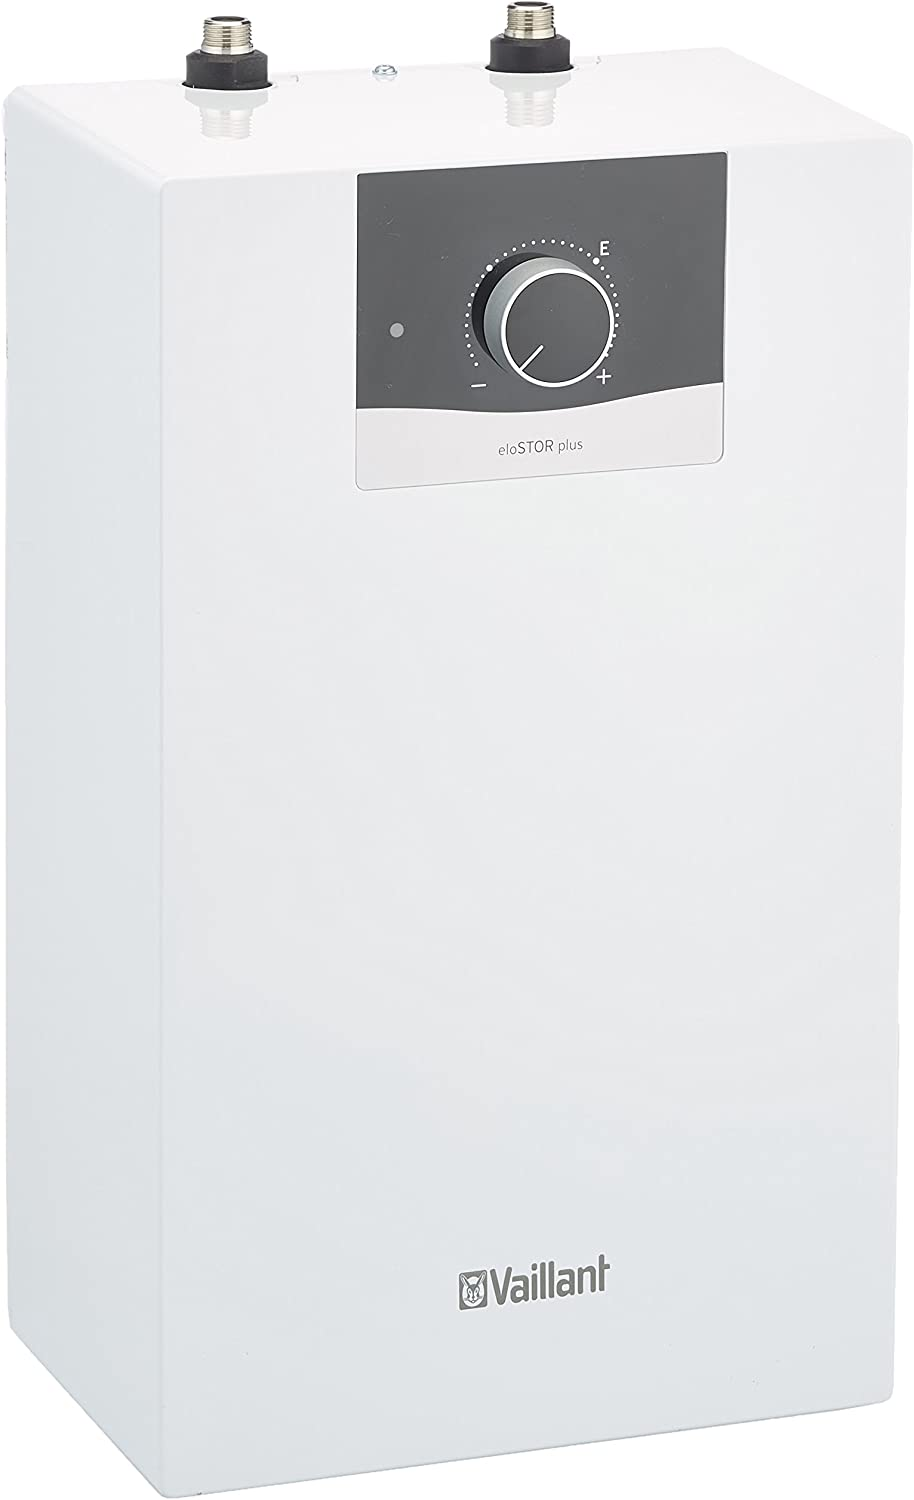 Untertischmontage Vaillant 0010012783 ND-Speicher VEN 5 U plus 2 kW//230 V